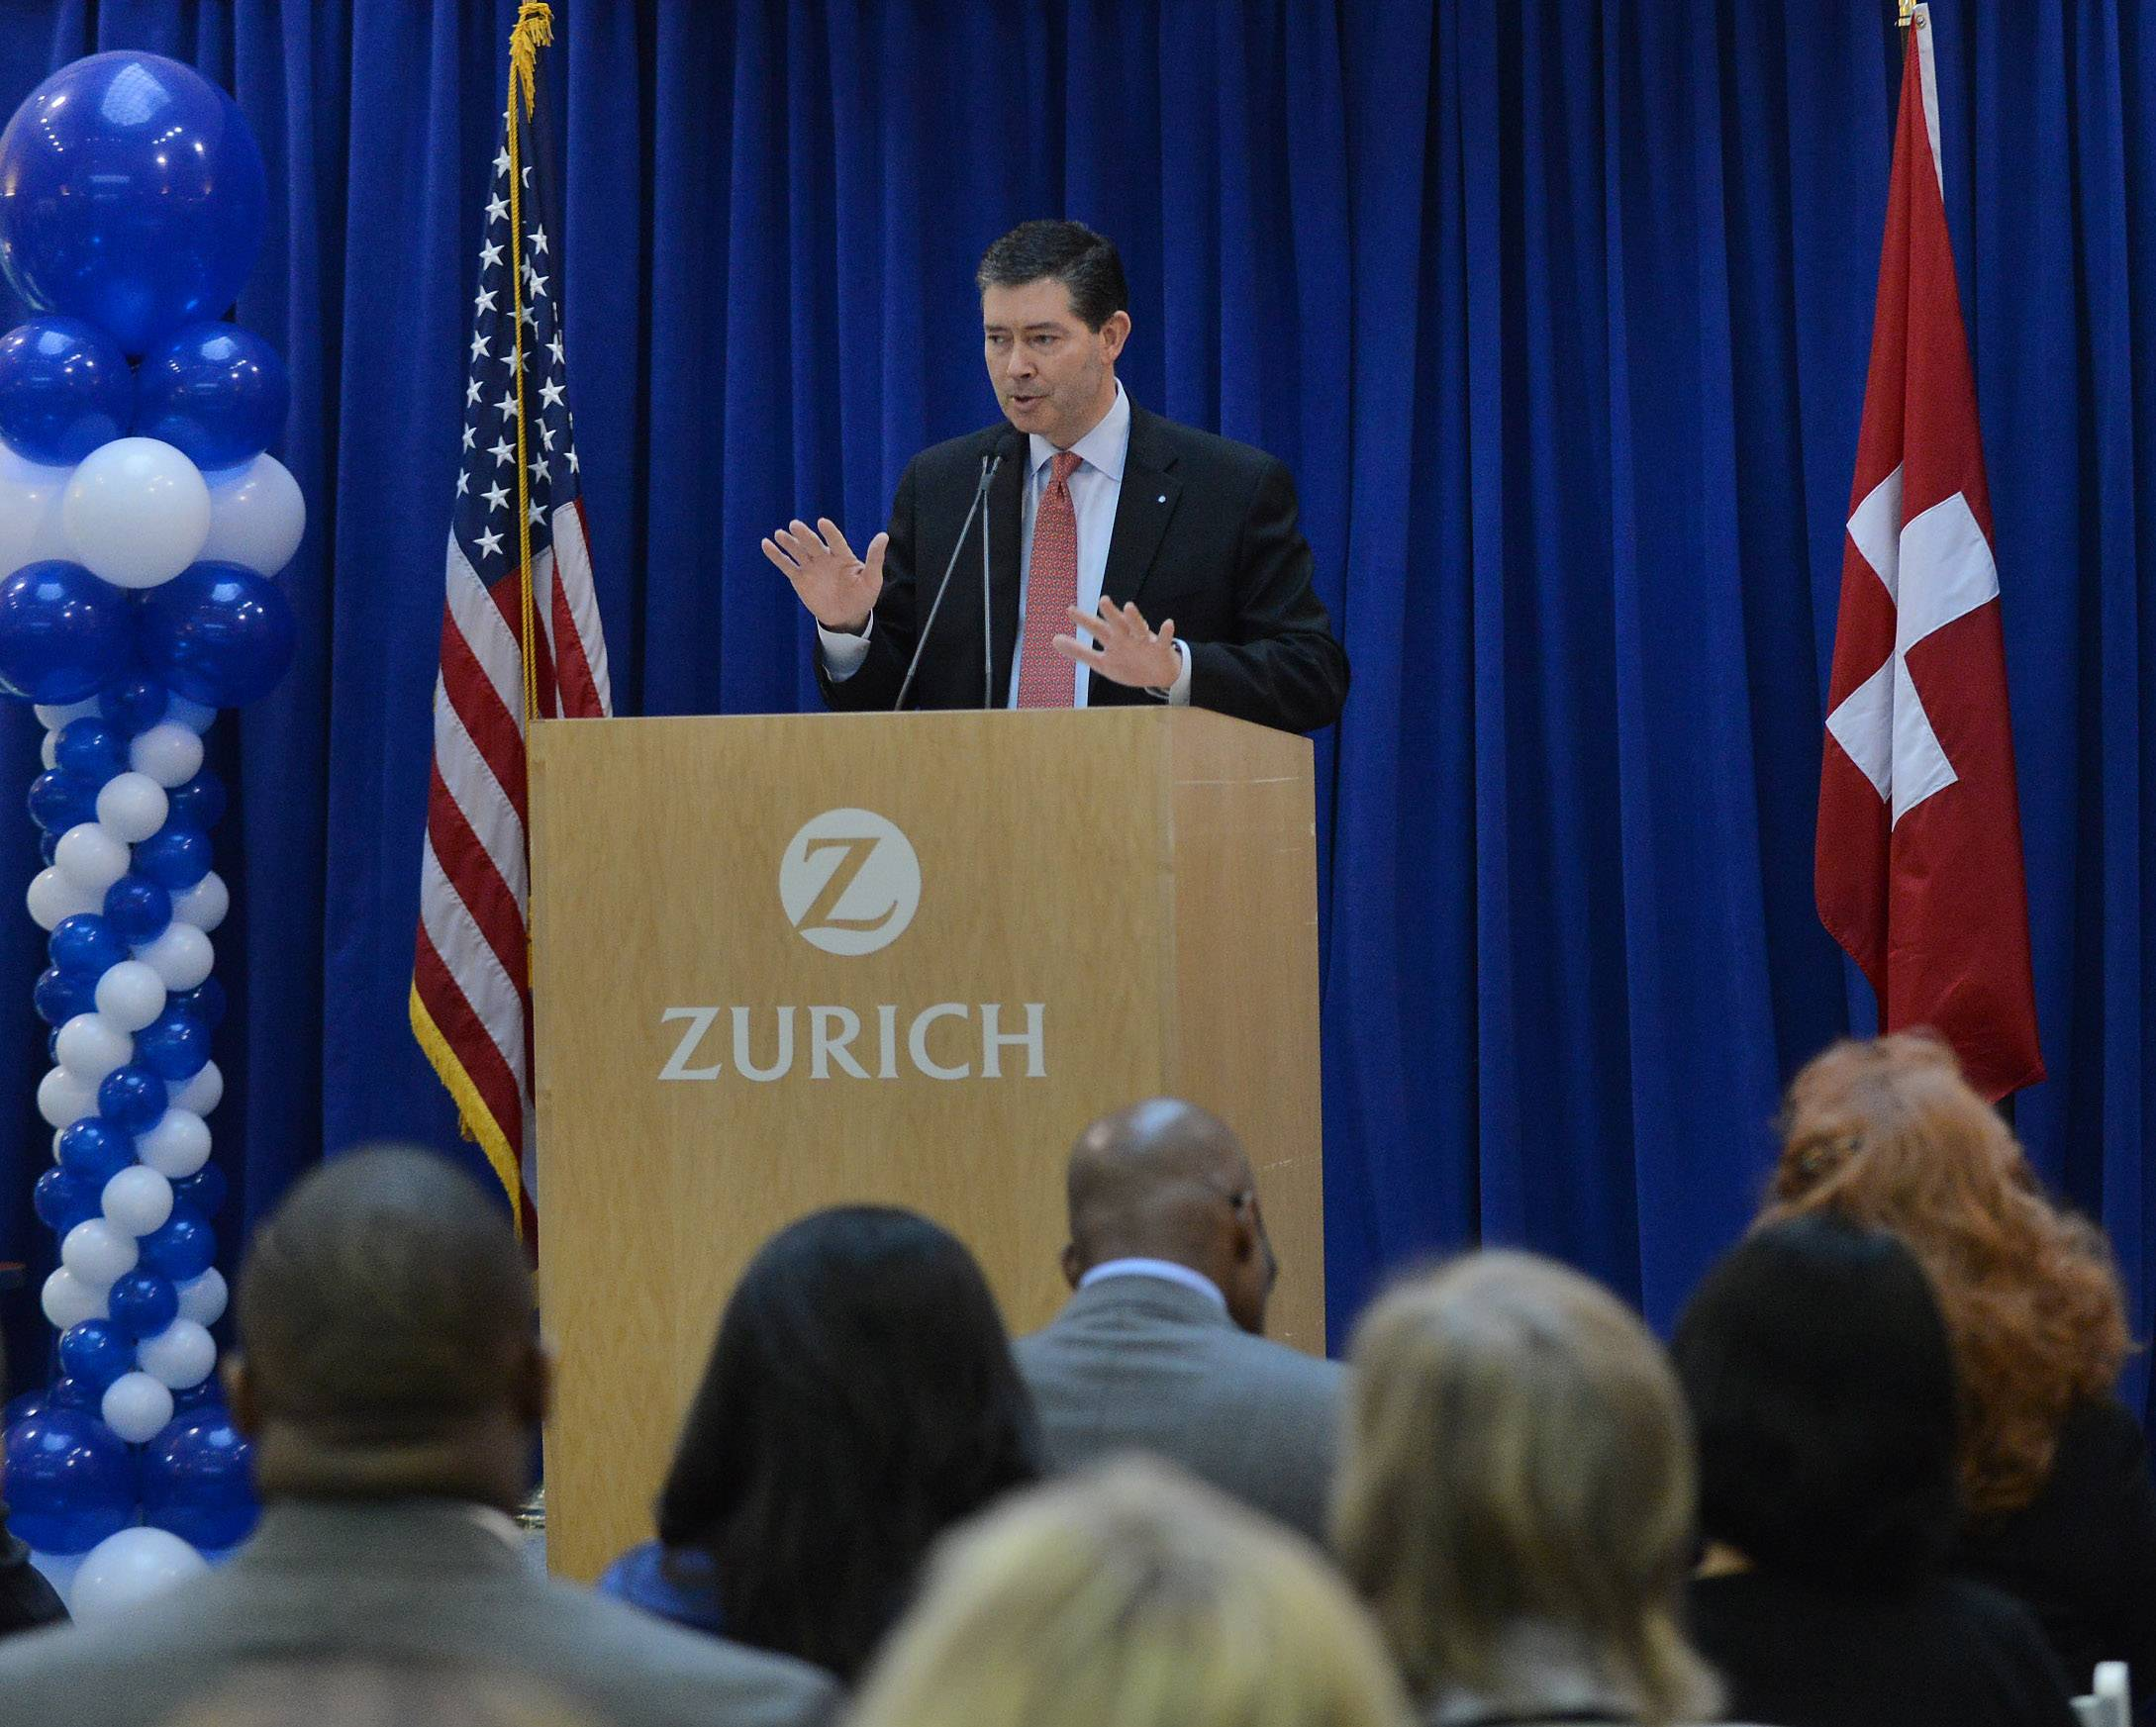 Mike Foley, chief executive officer of Zurich North America Commercial, addresses the crowd Tuesday as he helps launch a new apprenticeship program for the insurance industry between Zurich and Harper College.